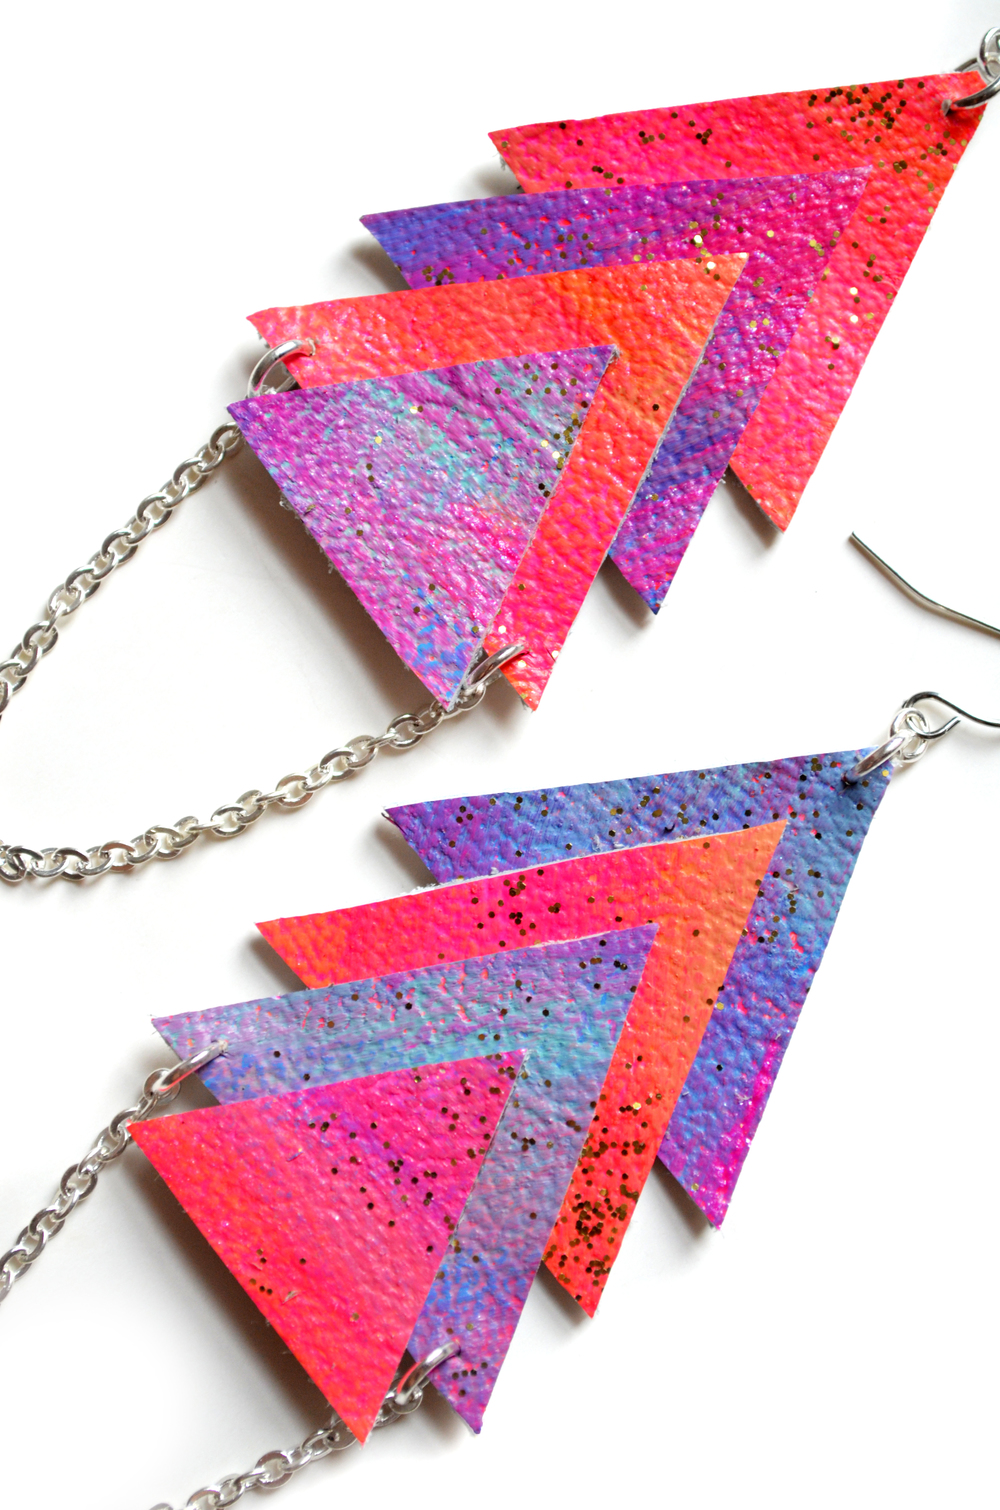 Galaxy Leather Earrings, Dangle Earrings, Pyramid Chevron Earrings, Triangle Geometric Jewelry 4.jpg